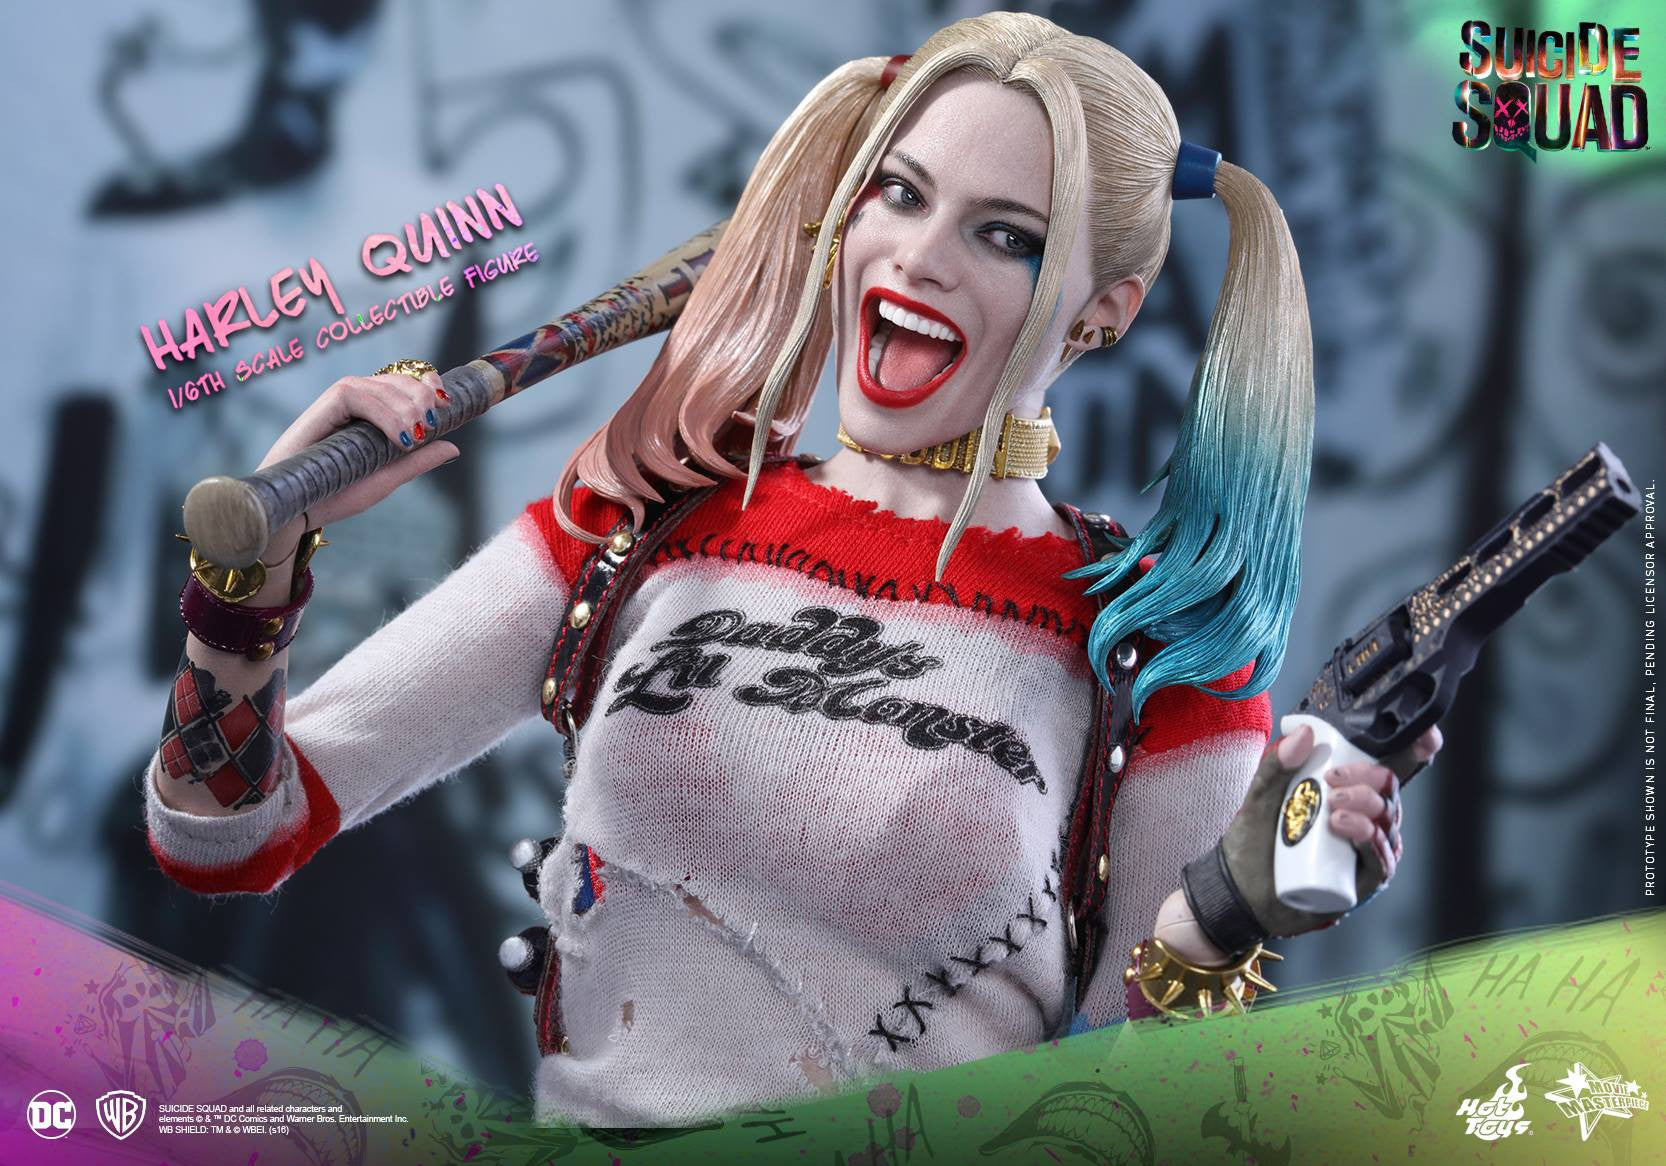 Hot Toys - MMS383 - Suicide Squad - Harley Quinn (Normal Edition) - Marvelous Toys - 2